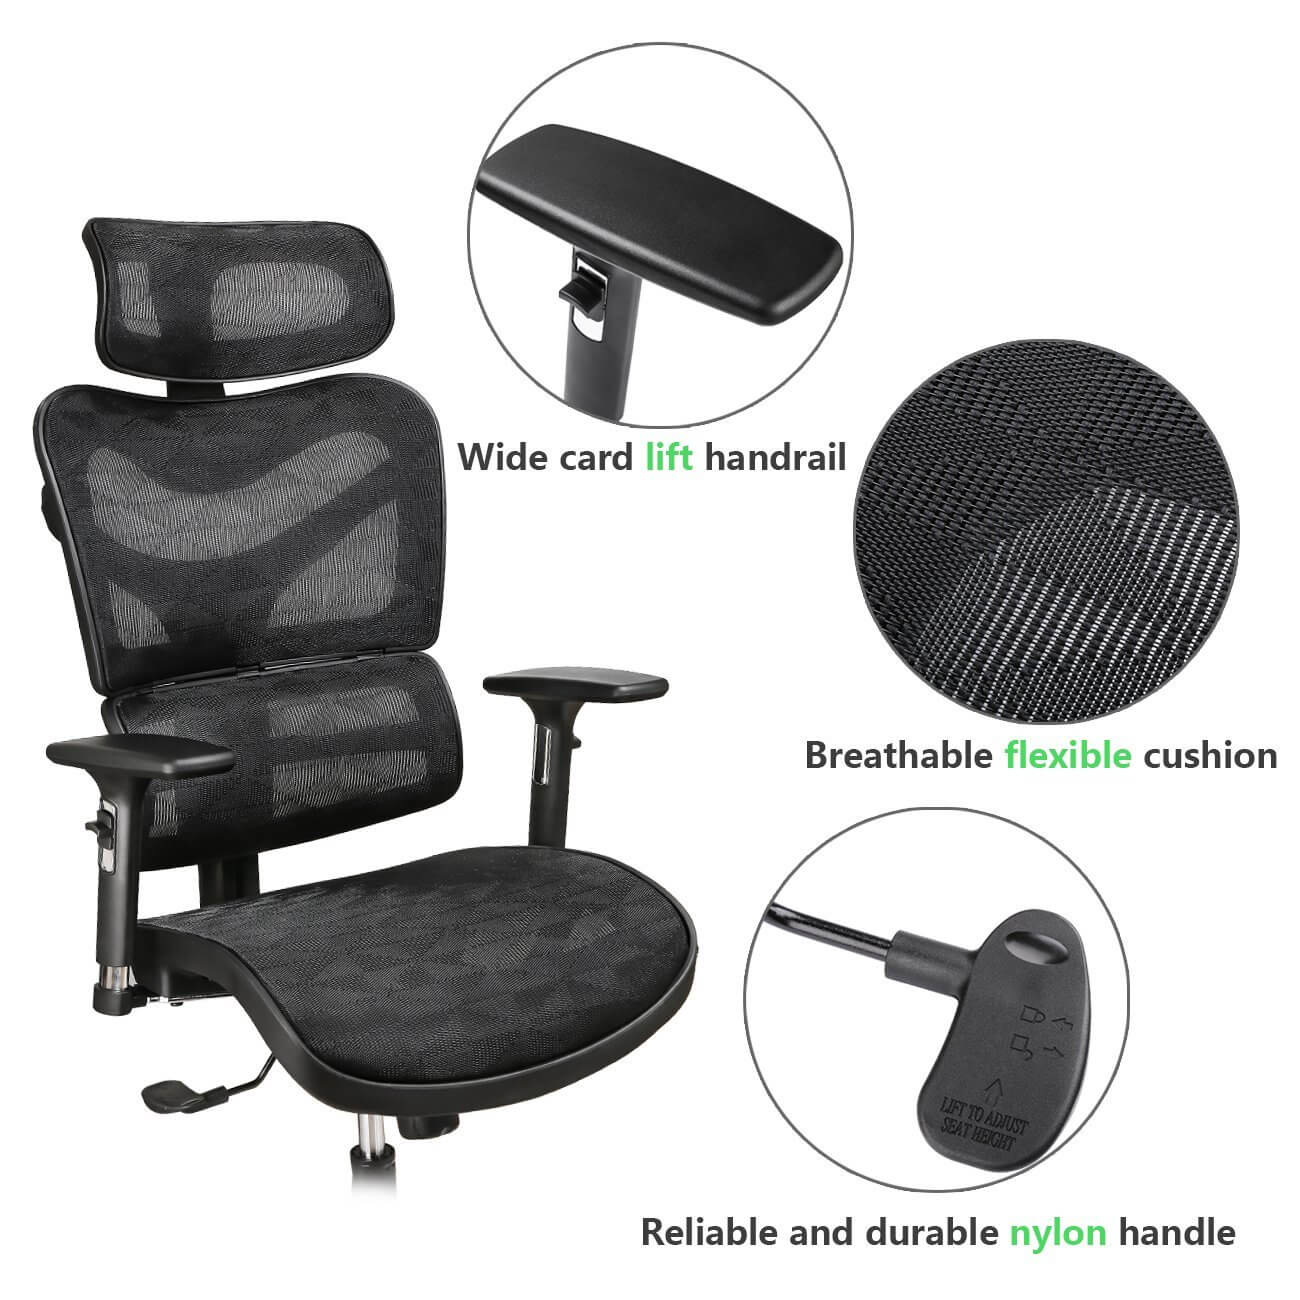 Surprising Top 19 Best Comfortable Computer Chair For Long Hours For 2019 Pdpeps Interior Chair Design Pdpepsorg